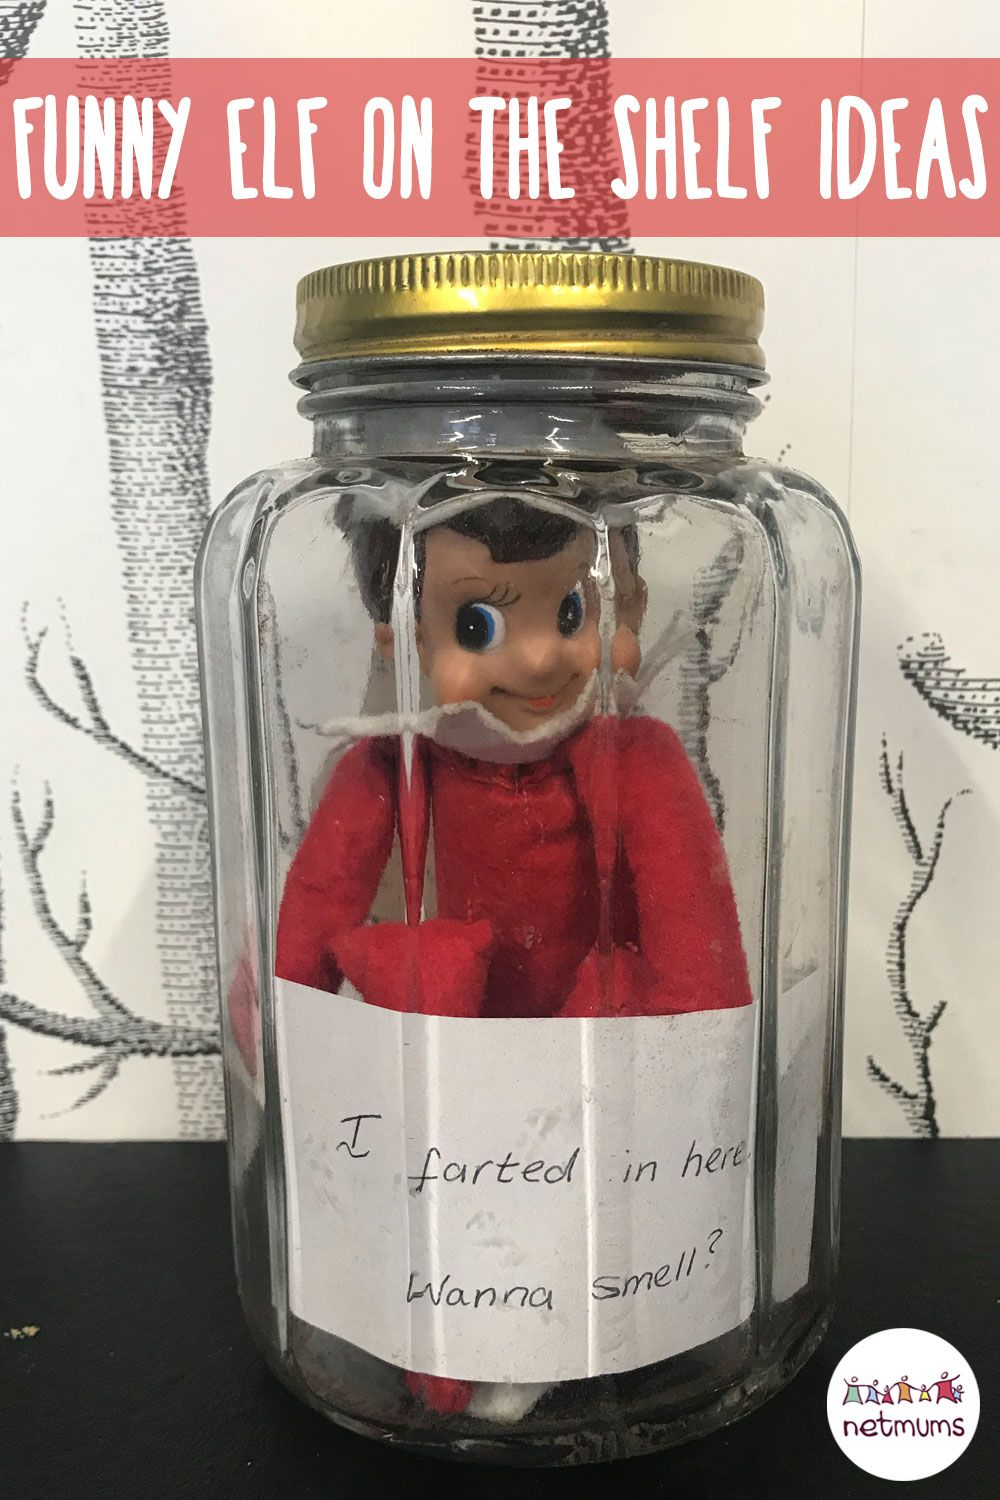 100 Funny Elf On The Shelf Ideas You Have To Try Christmas Elf Awesome Elf On The Shelf Ideas Elf On The Shelf